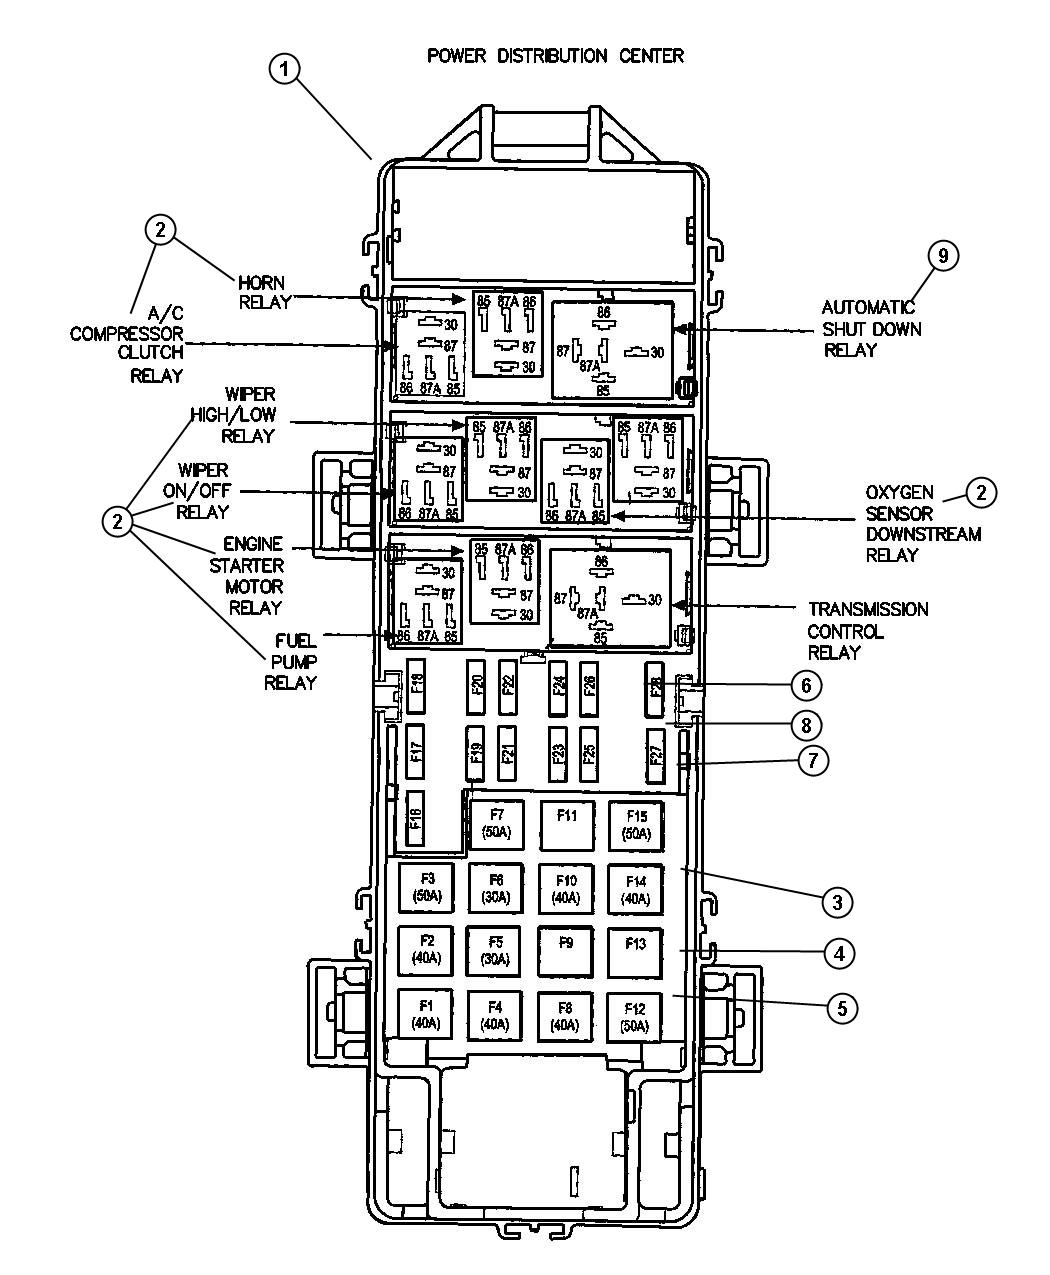 1996 Jeep Grand Cherokee Radio Wiring Diagram – 1996 Jeep Grand ...